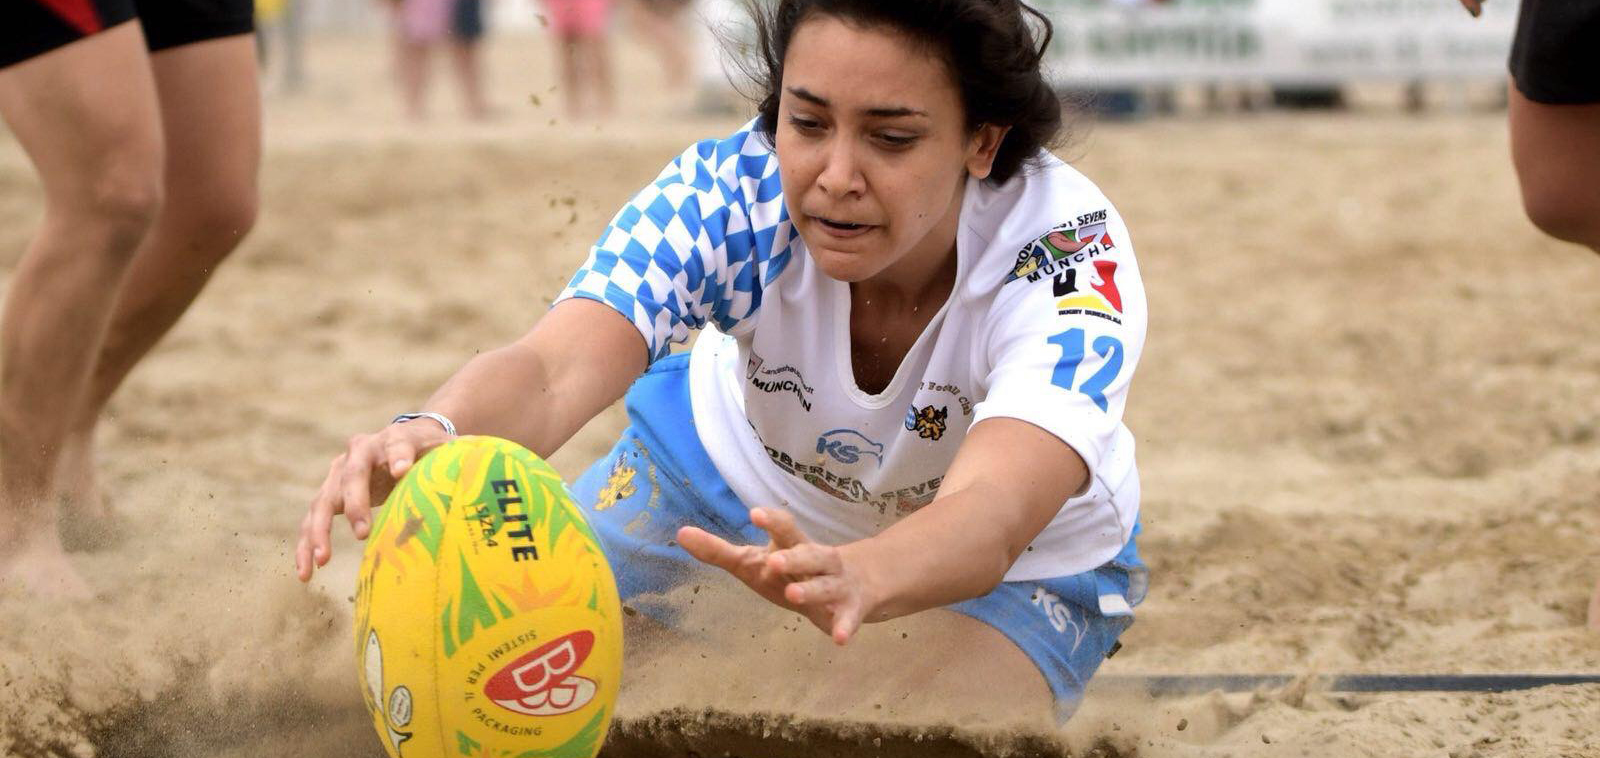 Die MRFC Ladies fliegen am Strand